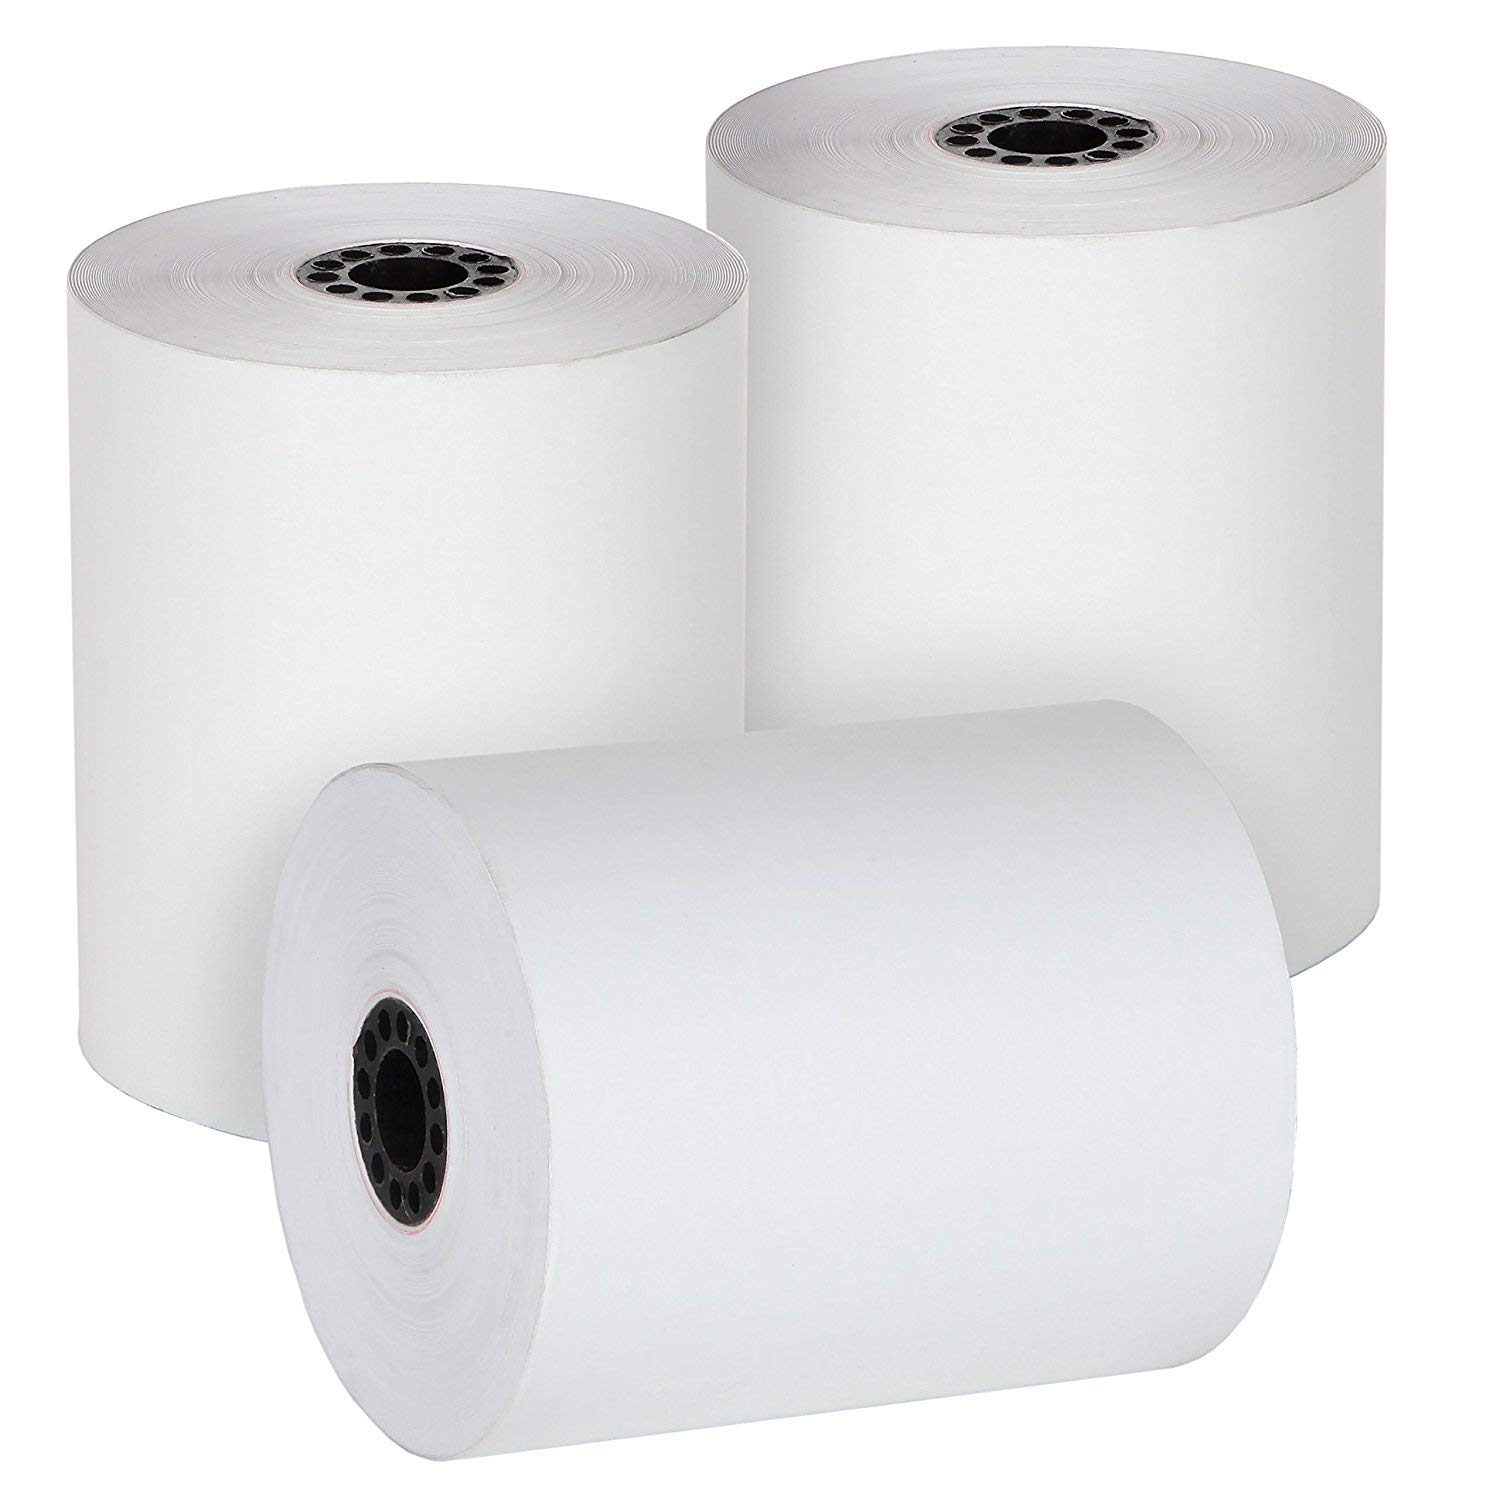 "Thermal Paper Roll - 3 1/8"" x 200' (50 rolls/box)"